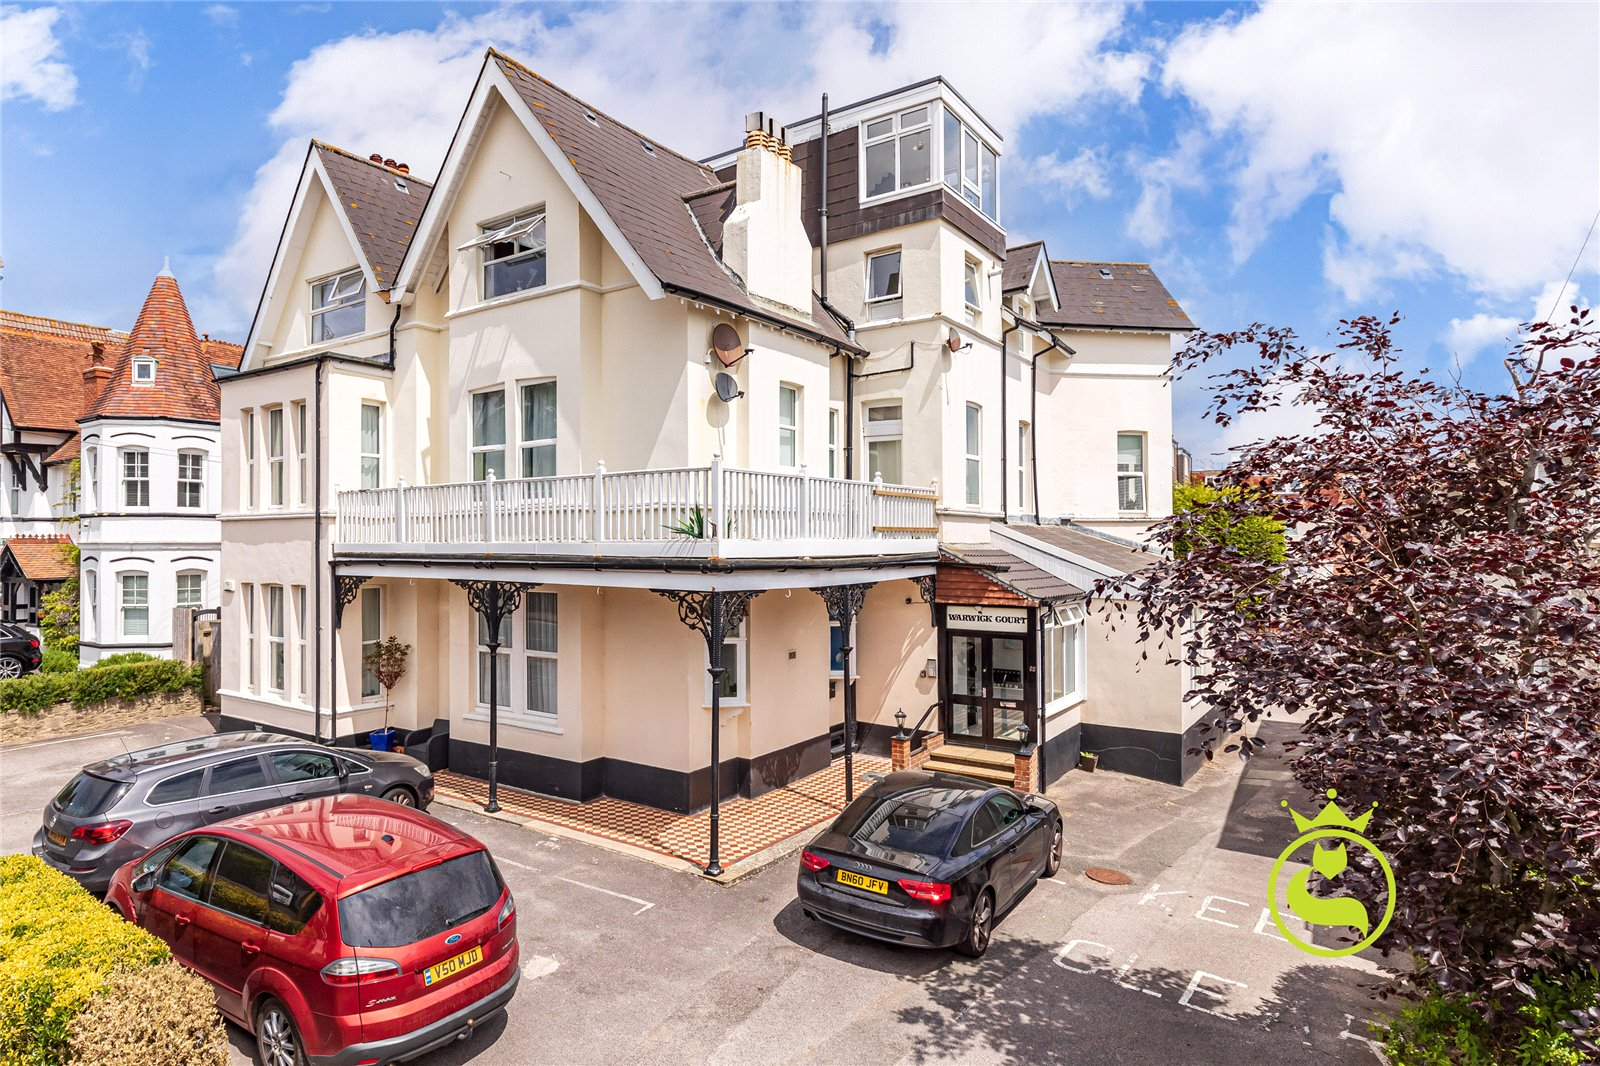 2 bed apartment for sale in Alumhurst Road, Alum Chine, BH4